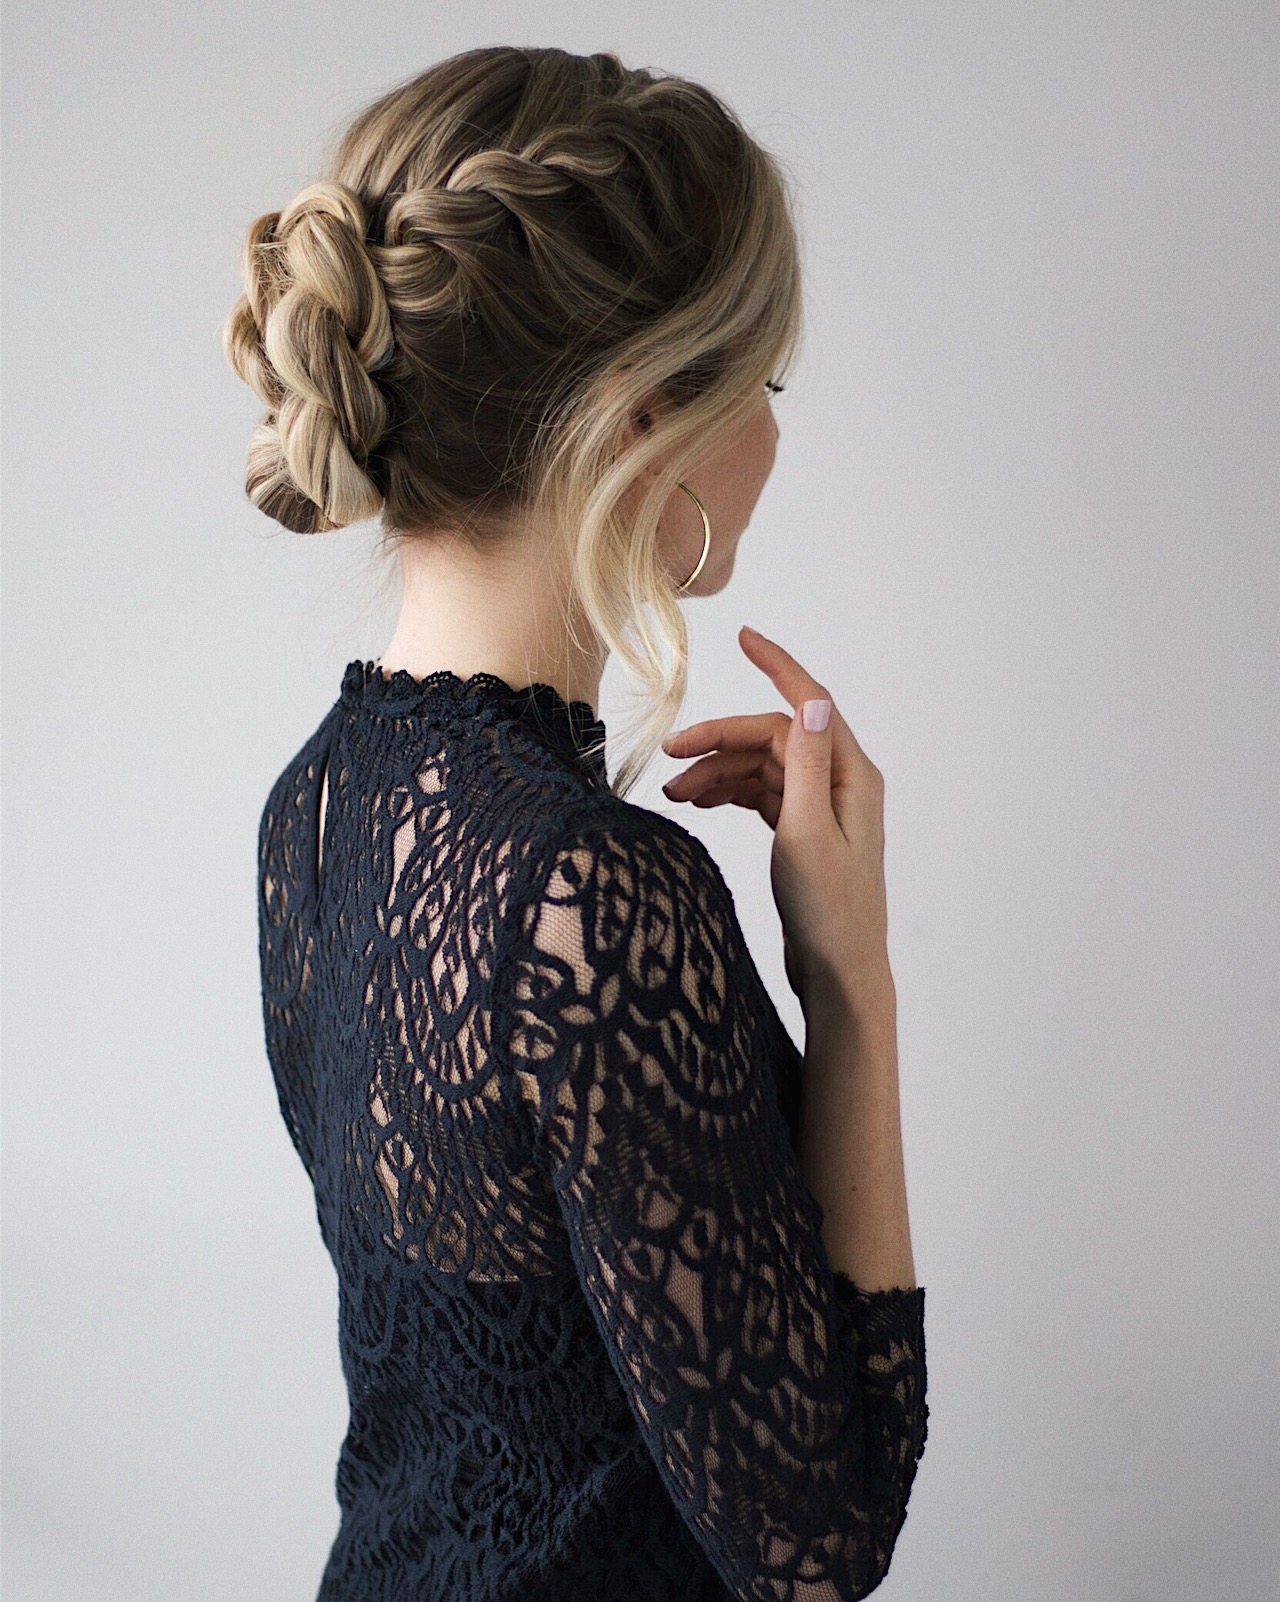 French Twist Updo Hair Tutorial | www.alexgaboury.com